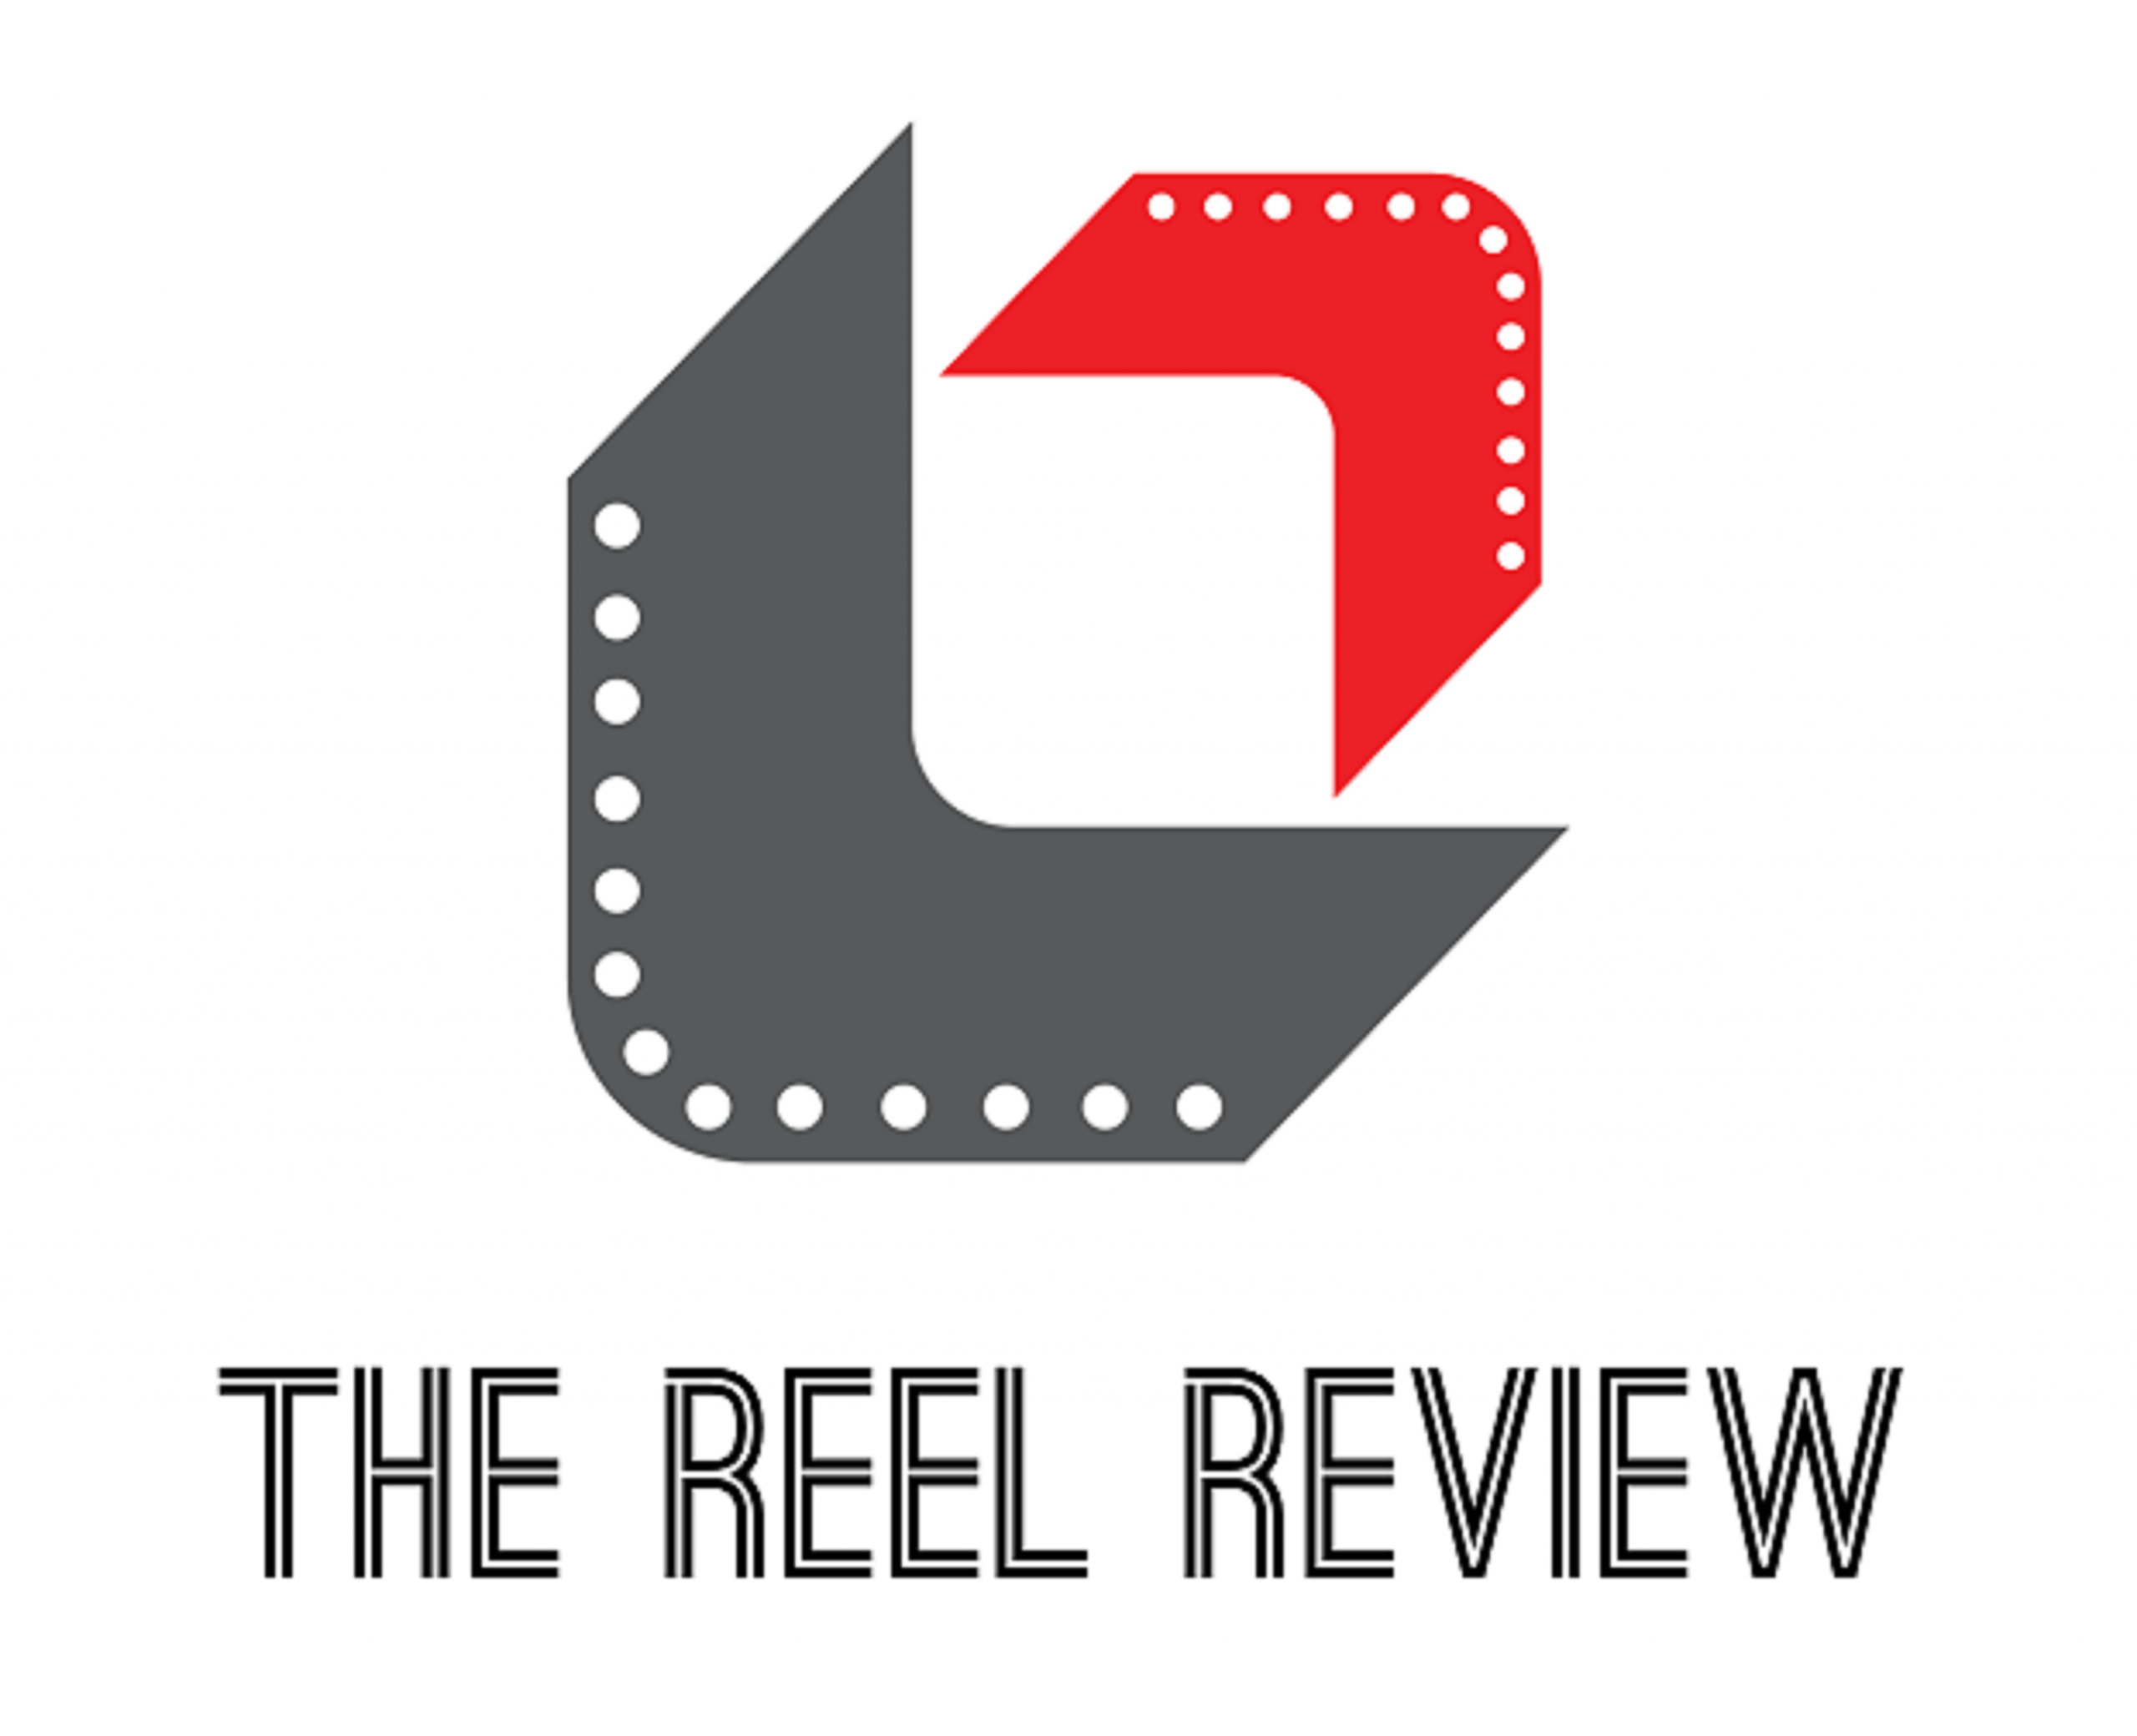 Logo for The Reel Review